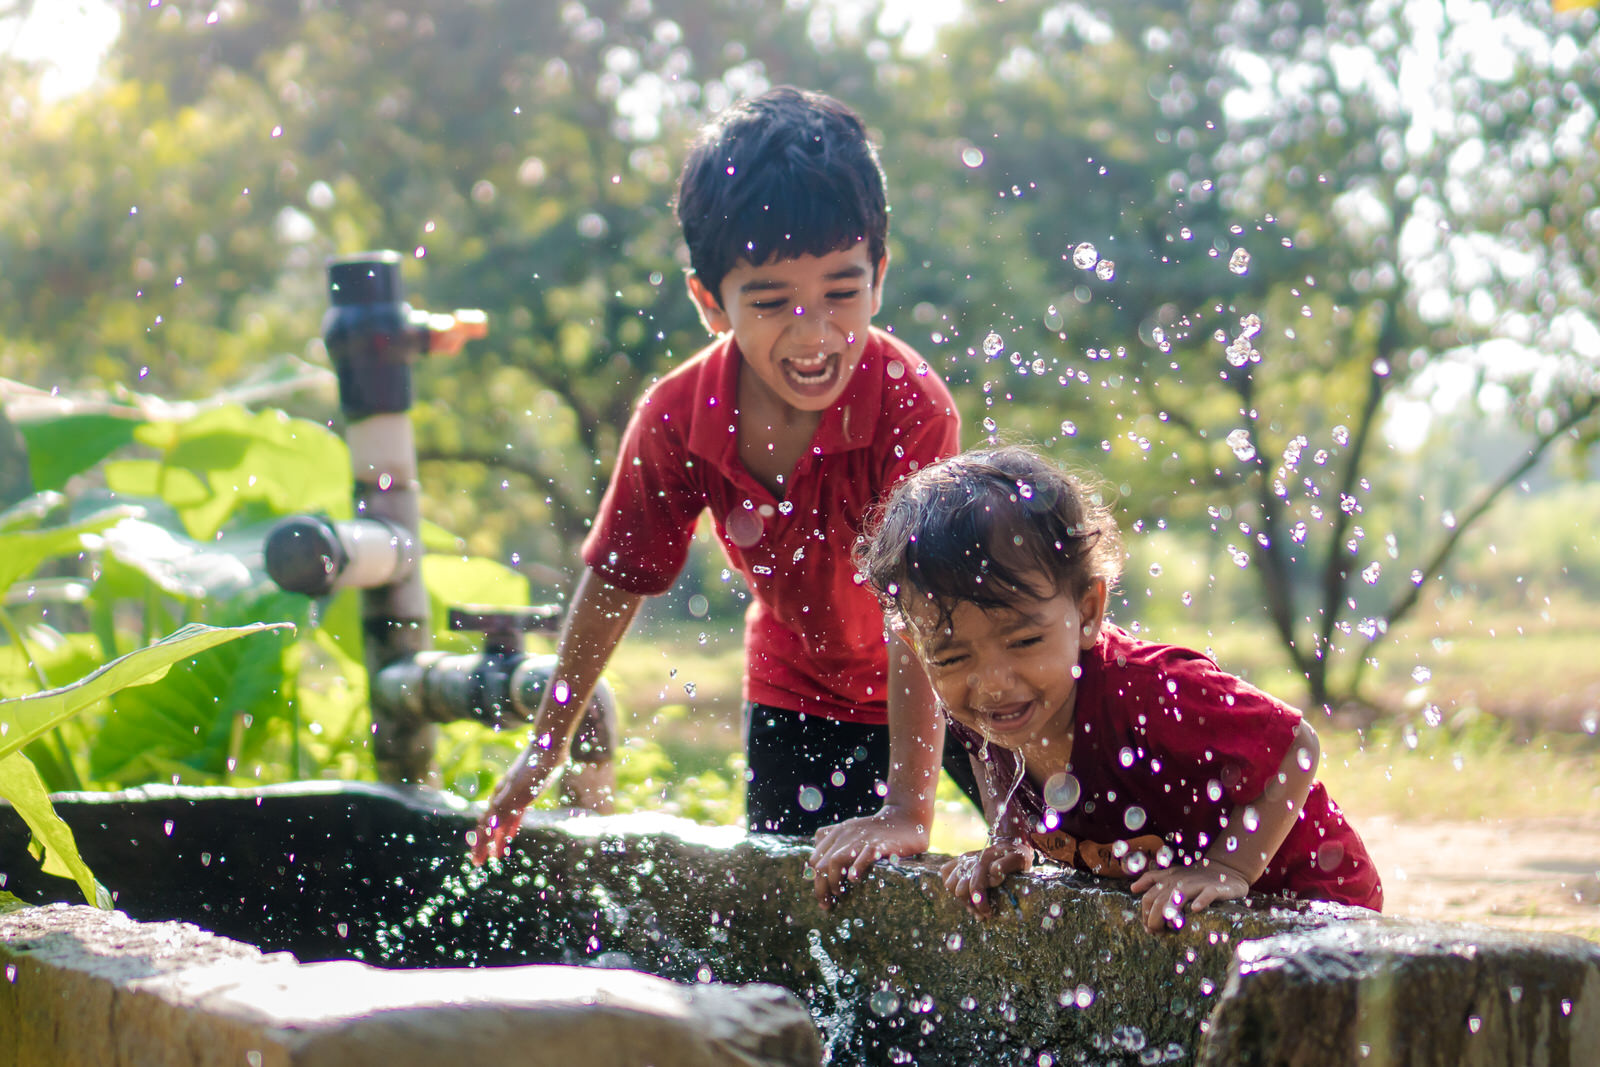 23122017-Boys-Playing-Water-Tank-288.jpg